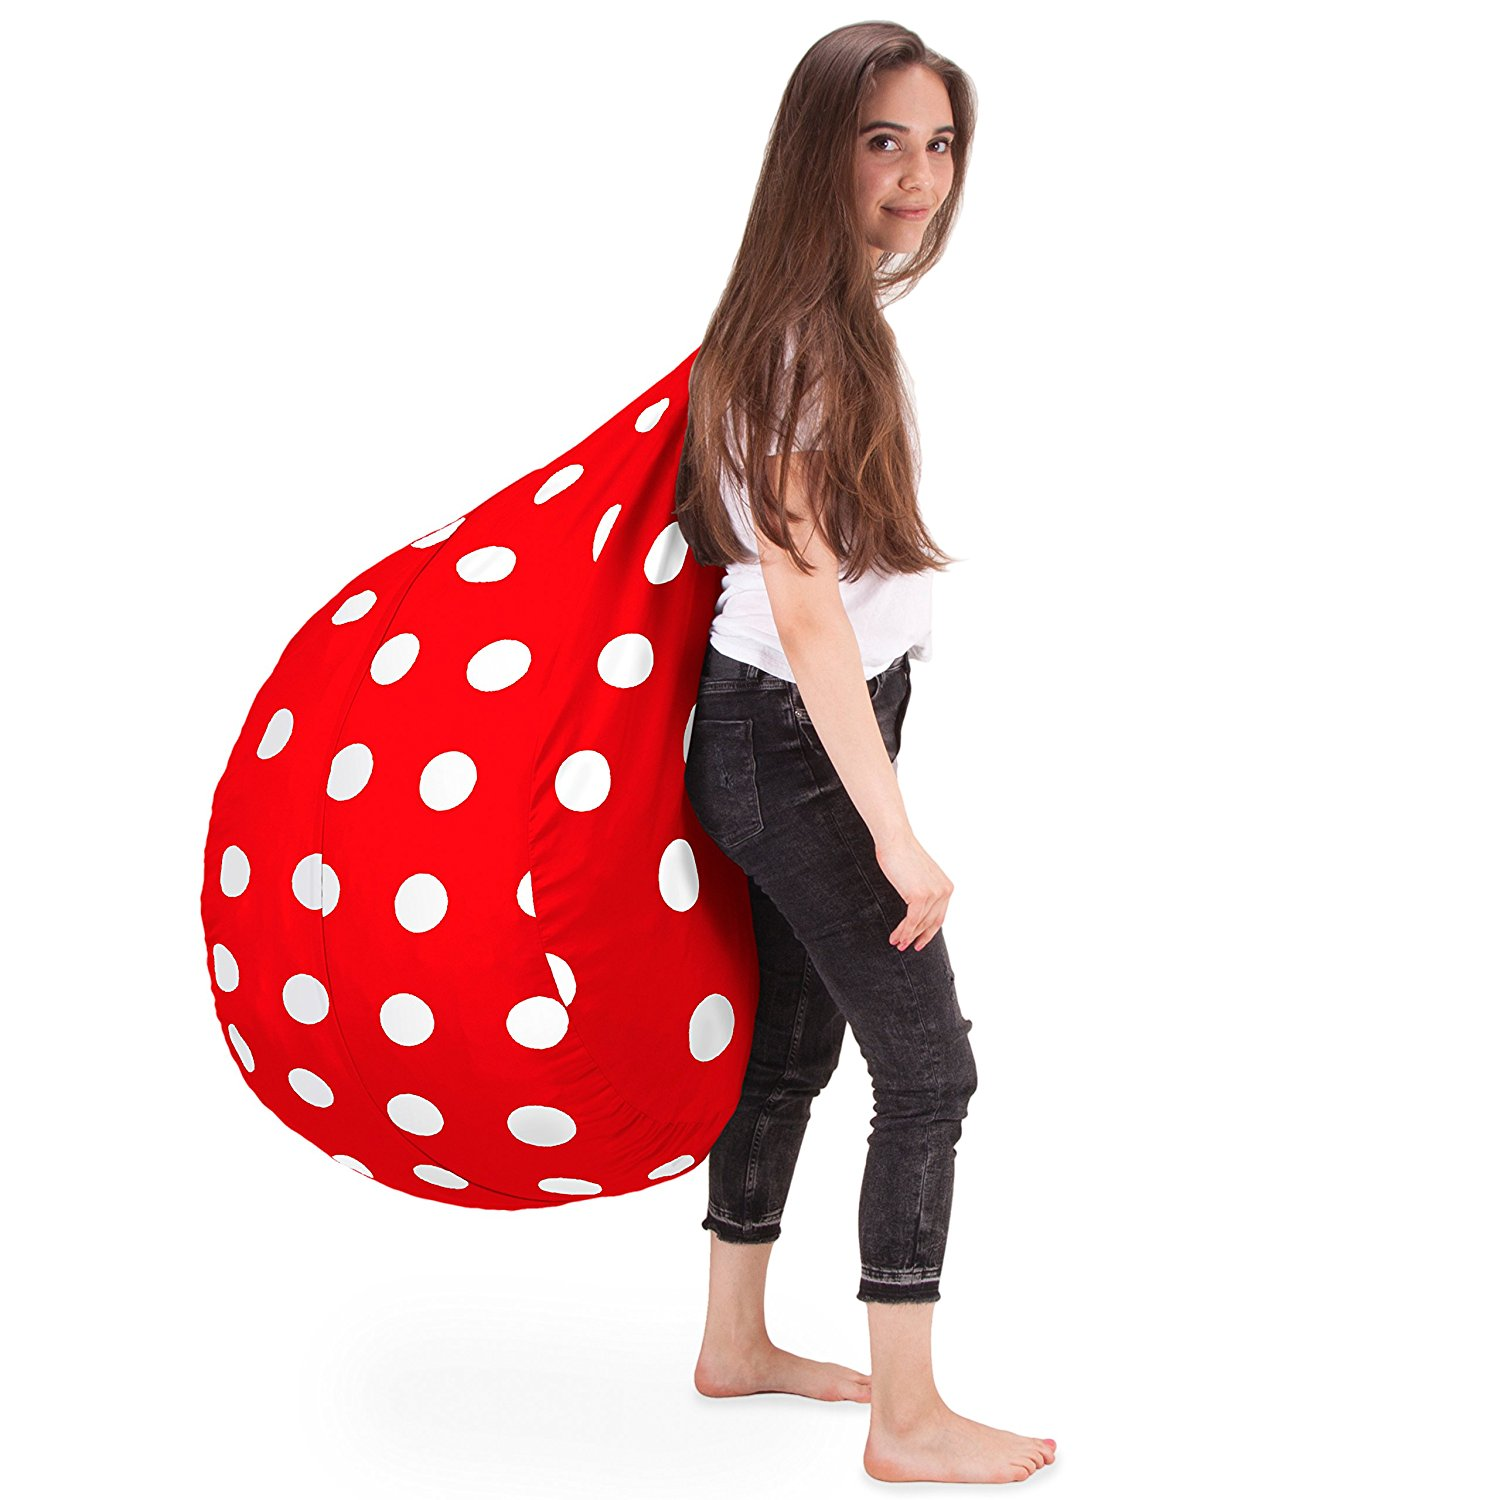 panda bean bag chair ricon wheel lift tiny home lifestyle reviews love the whimsical red and